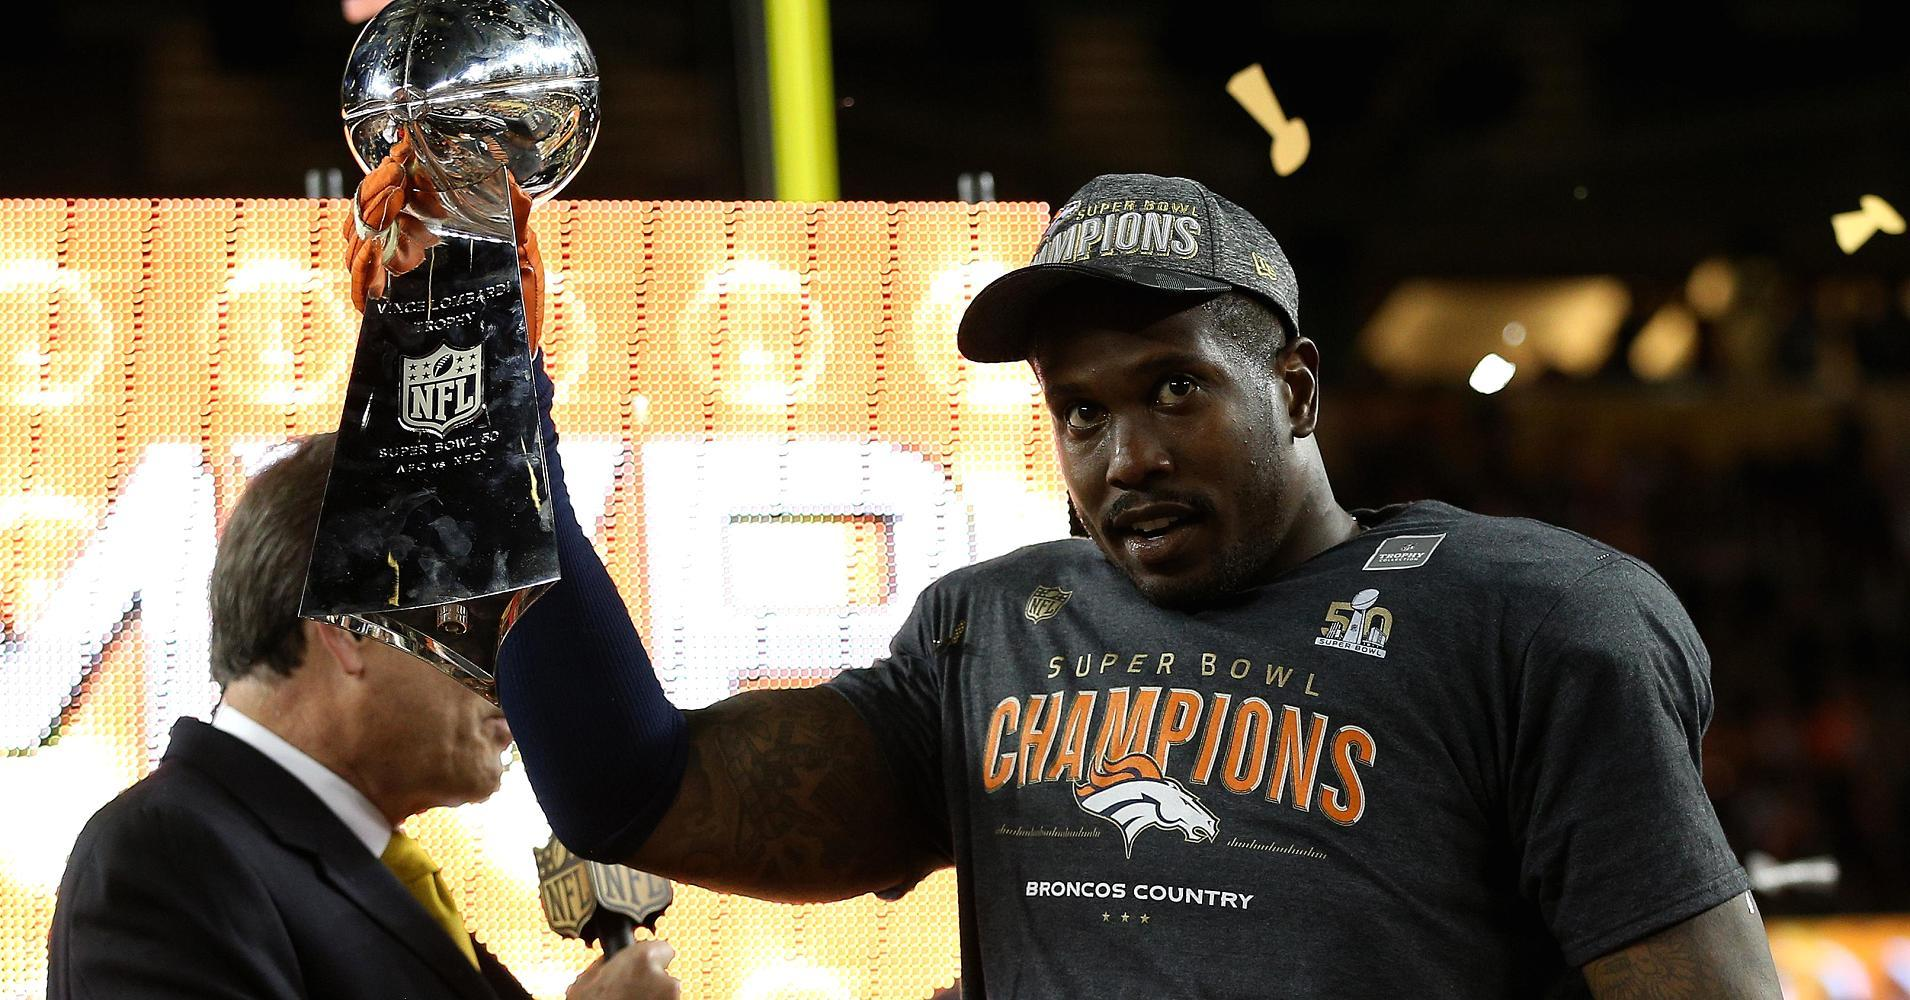 Super Bowl star Von Miller bodes bad news for markets